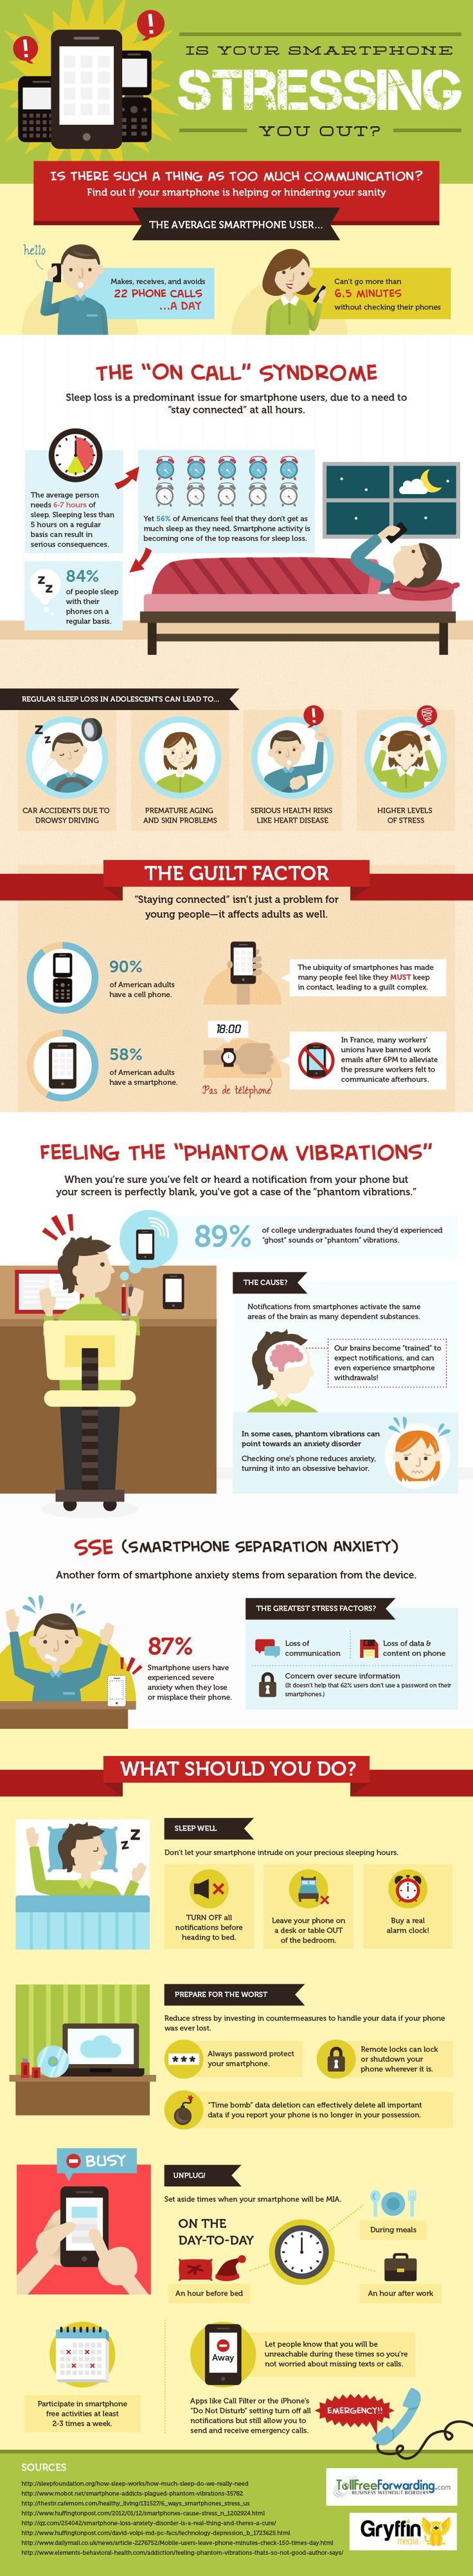 Is Your Smart Phone Stressing You Out #infographic #Smartphone #Health #MobileDevices